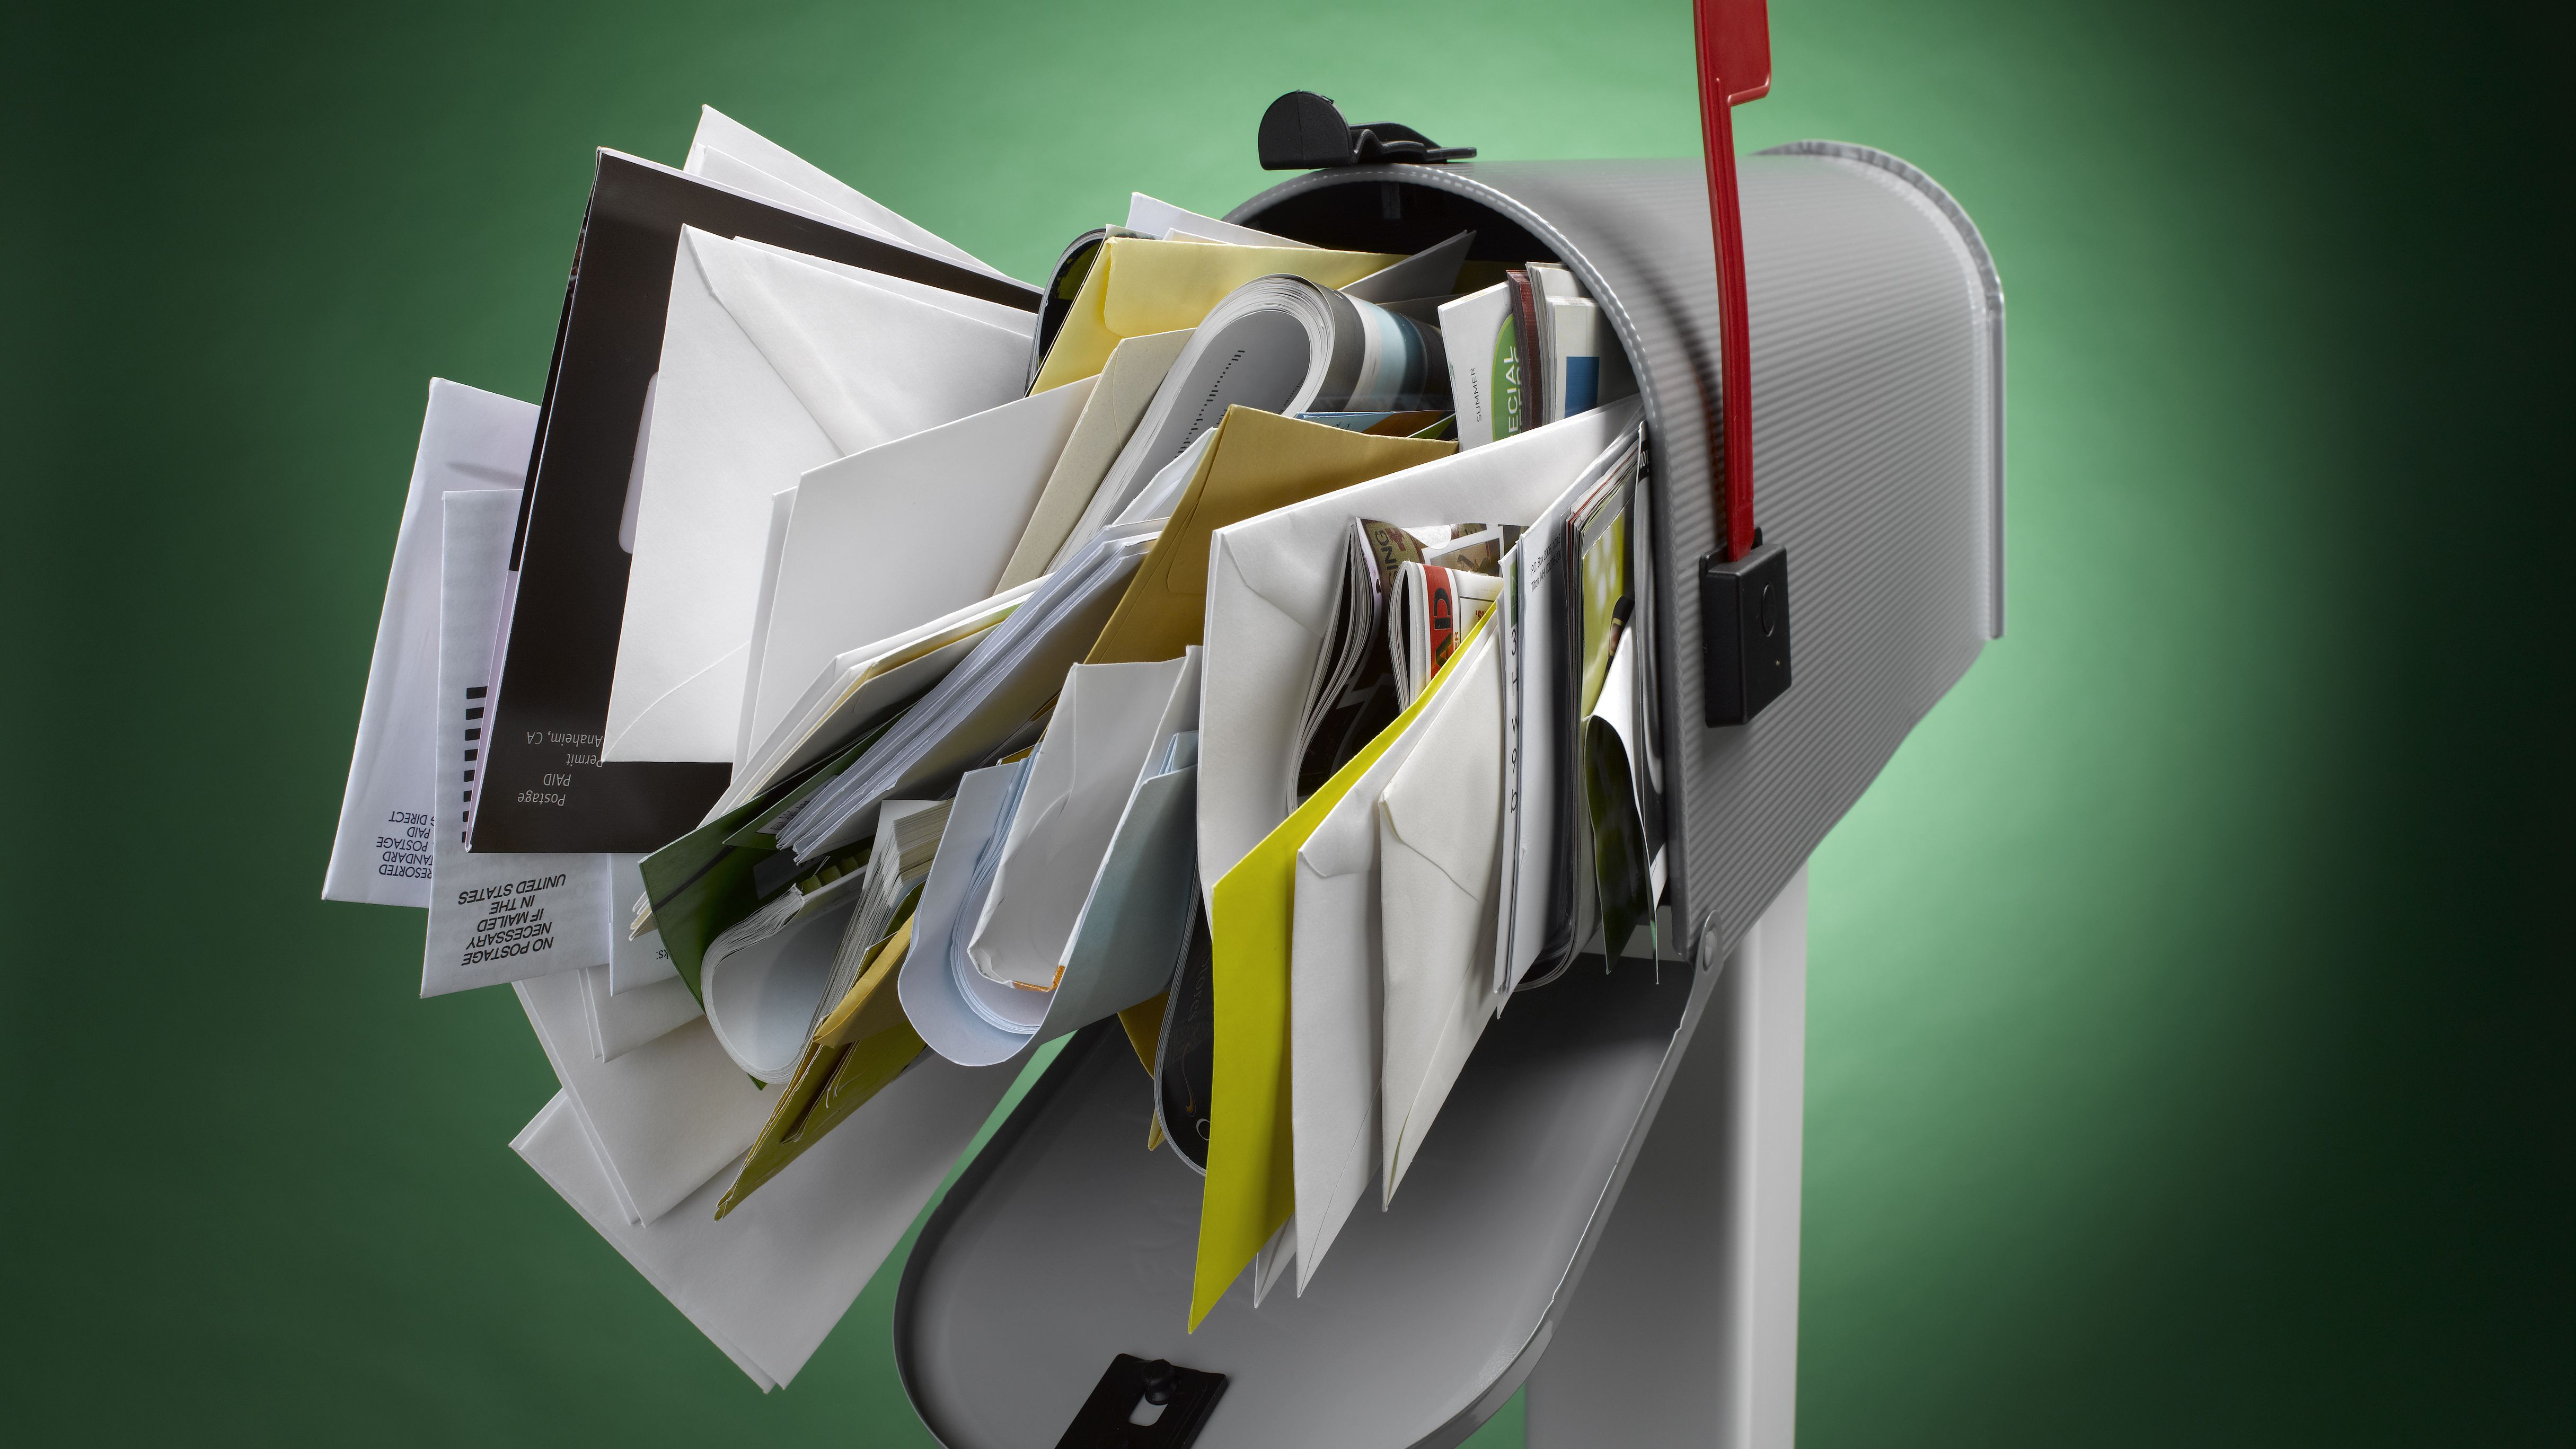 How to Spot Junk Mail Without Opening the Envelope